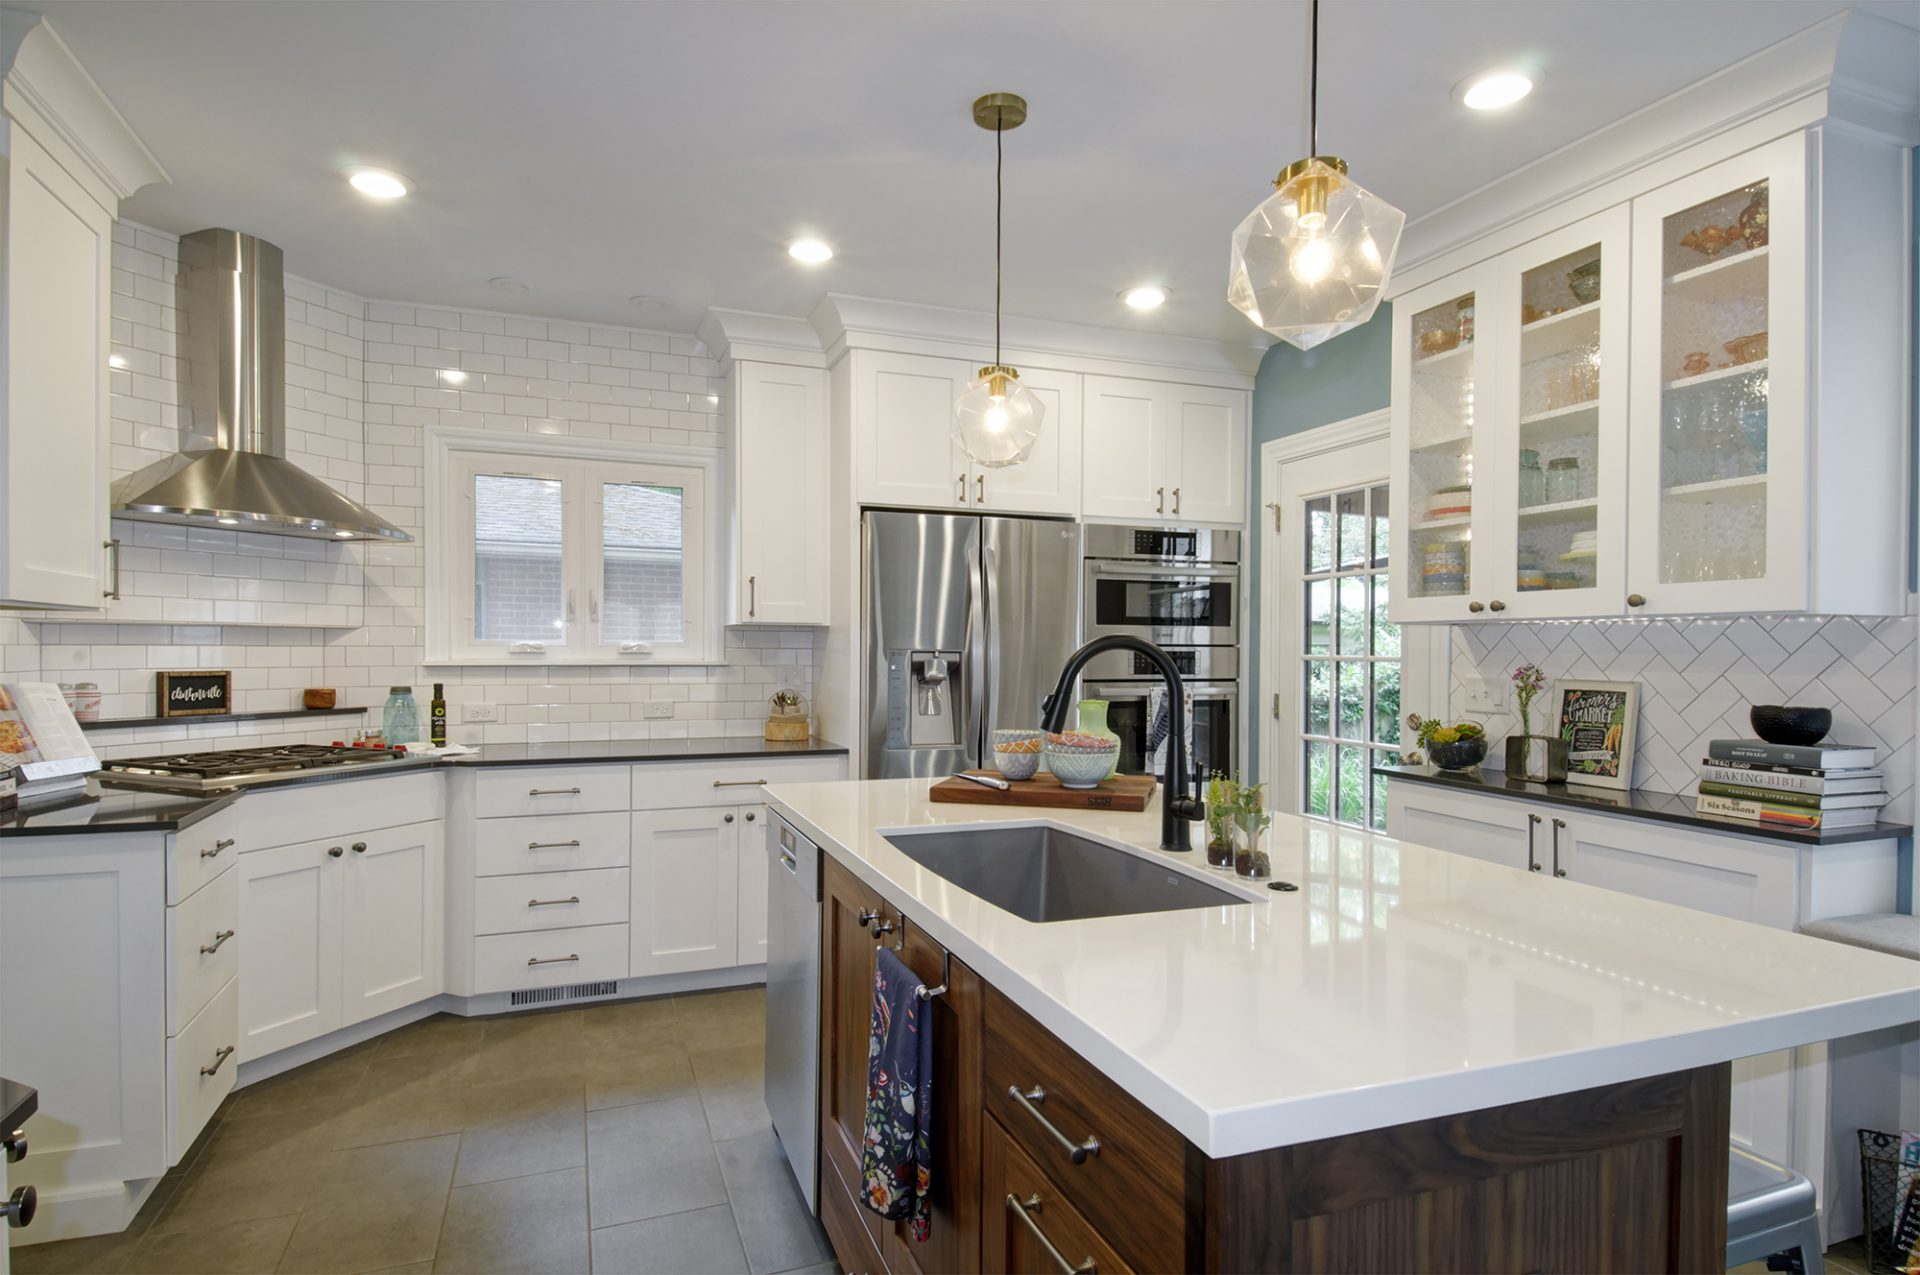 Kitchen, clintonville, Dave Fox, range hood, stainless steel, wood working island, pendent lights, white cabinets, subway tile